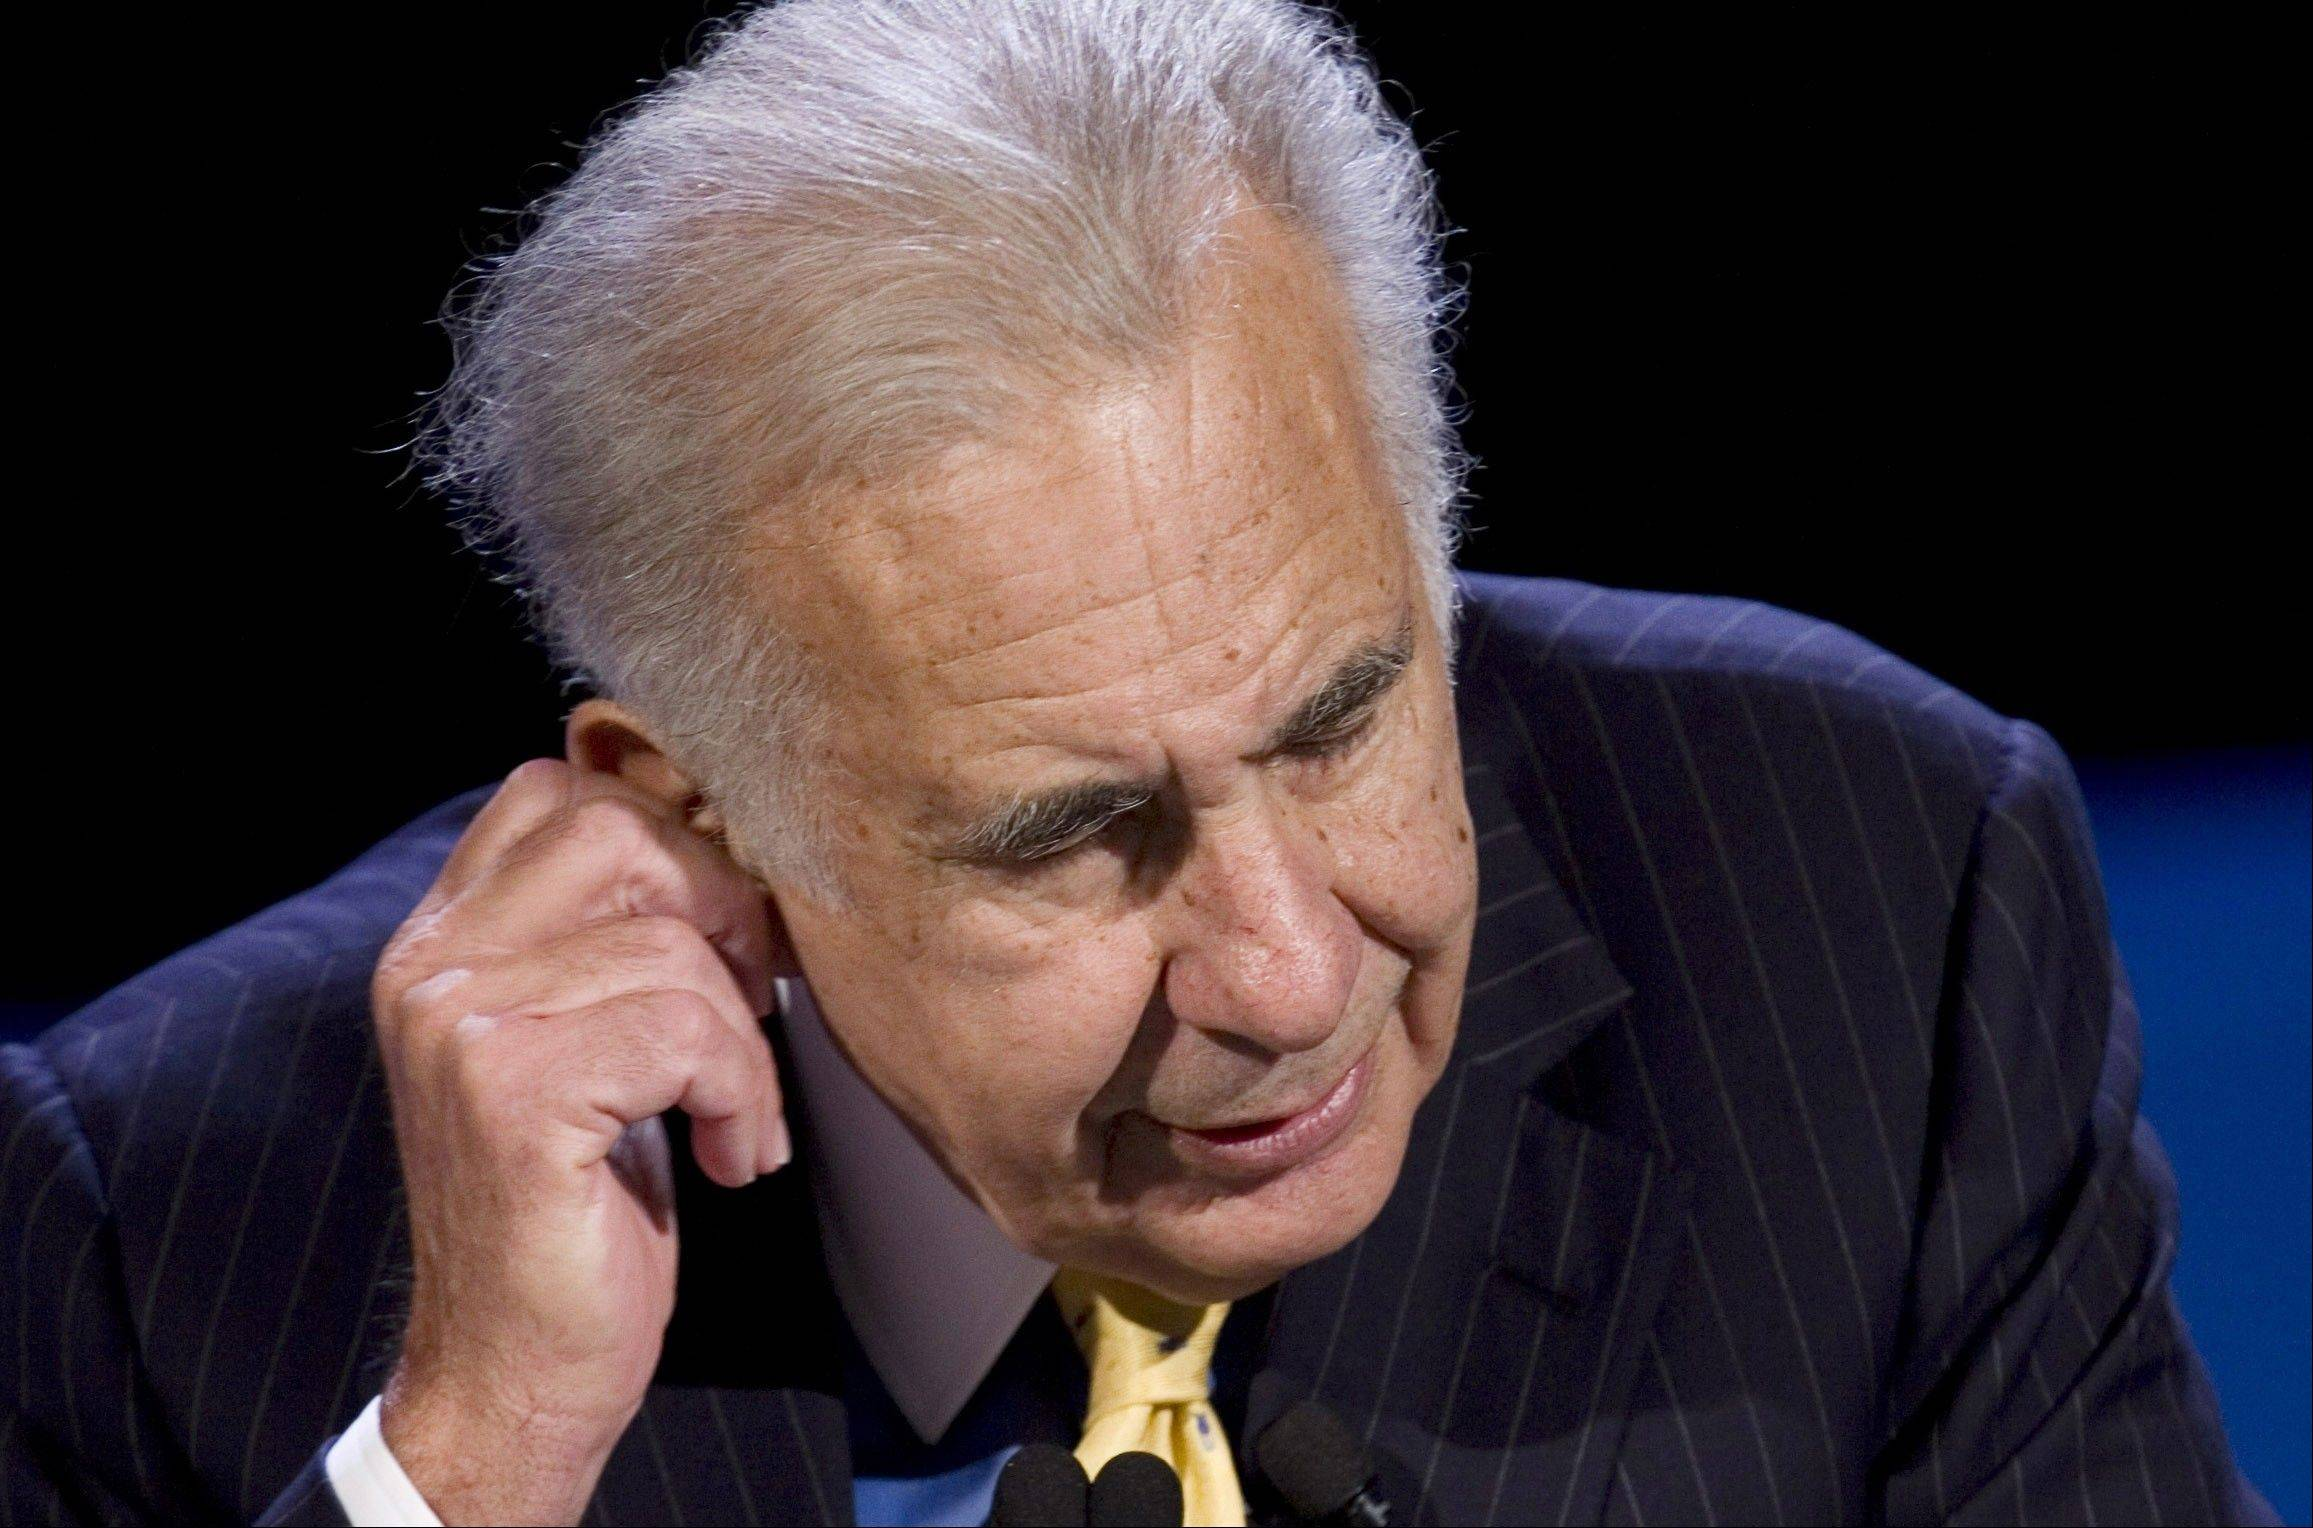 Billionaire investor Carl Icahn said Tuesday, Dec. 4, 2012, he is giving up his bid to buy truck maker Oshkosh after less than 25 percent of the company's shares were tendered before his offer expired.